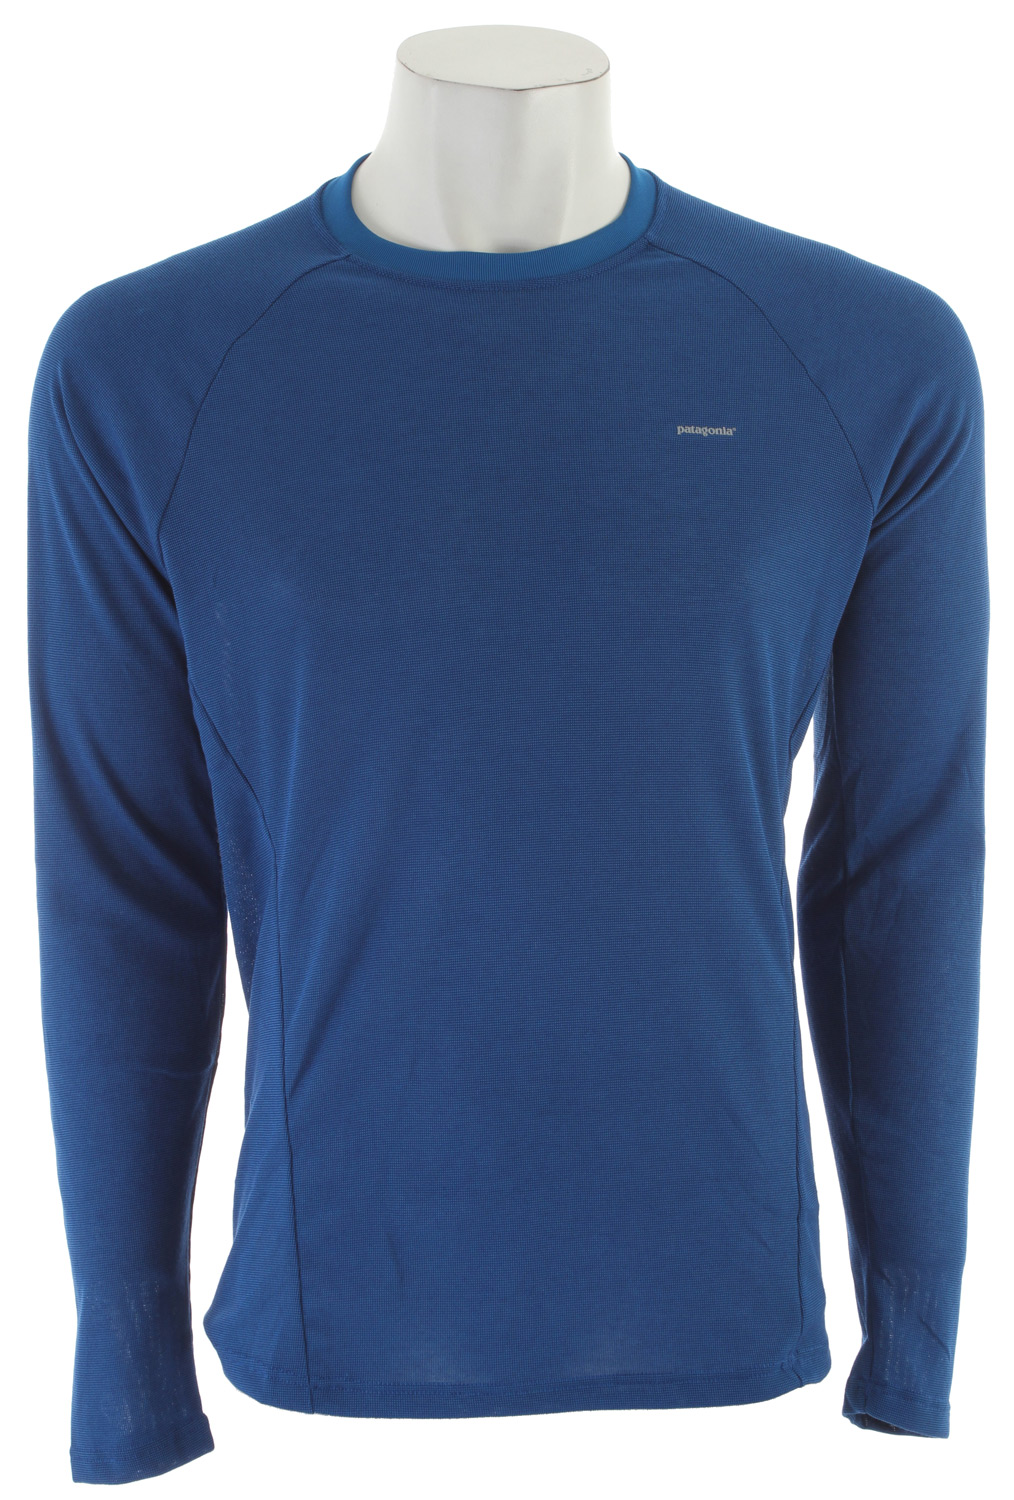 Fitness Our most breathable synthetic baselayer keeps you dry and comfortable in cool conditions. Whether striding through an early morning run or shuffling along under the weight of a loaded pack, Capilene 2 baselayer has got your back. Its open-knit construction breathes, wicks moisture and clocks the fastest dry time of all our performance baselayer fabrics. You can wear it on its own in warm weather or as insulation beneath layers. With a rib-knit collar that's soft against the skin, offset side seams and raglan sleeves for a chafe-free fit under shoulder straps. Made of 4-oz 100% polyester (54% recycled), with Gladiodor odor control for the garment.Key Features of the Patagonia Capilene 2 LW Crew Baselayer Top: Slim fit Open knit promotes airflow, is naturally stretchy and provides excellent wicking for endurance activities in cool to moderate temperatures Our fastest-drying baselayer fabric insulates enough for use on chilly days and can be worn beneath other layers Self-fabric neckline is soft next to skin Raglan sleeves and underarm panels merge out of the way of pack straps Flat-rib panel-piecing under the arms and sides is exceptionally breathable, fast drying and eliminates armpit seam chafing Machine-wash cold, tumble dry at low temperature 4-oz 100% polyester (54% recycled) circular knit, with Gladiodor odor control for the garment 158 g (5.6 oz) Made in Mexico. Material: Capilene baselayers feature a moisture-wicking polyester fabric that dries quickly. Capilene polyester is also recycled, recyclable and features Gladiodor garment odor control. Technology: Climbing, skiing, running: at some point you're going to sweat, and at some point you're going to stink. Gladiodor Garment Odor Control reduces unwanted smells on the fabric of a garment so you and your partners can breathe a little easier. Gladiodor treatments are rigorously tested for functionality initially and after washing. - $45.00